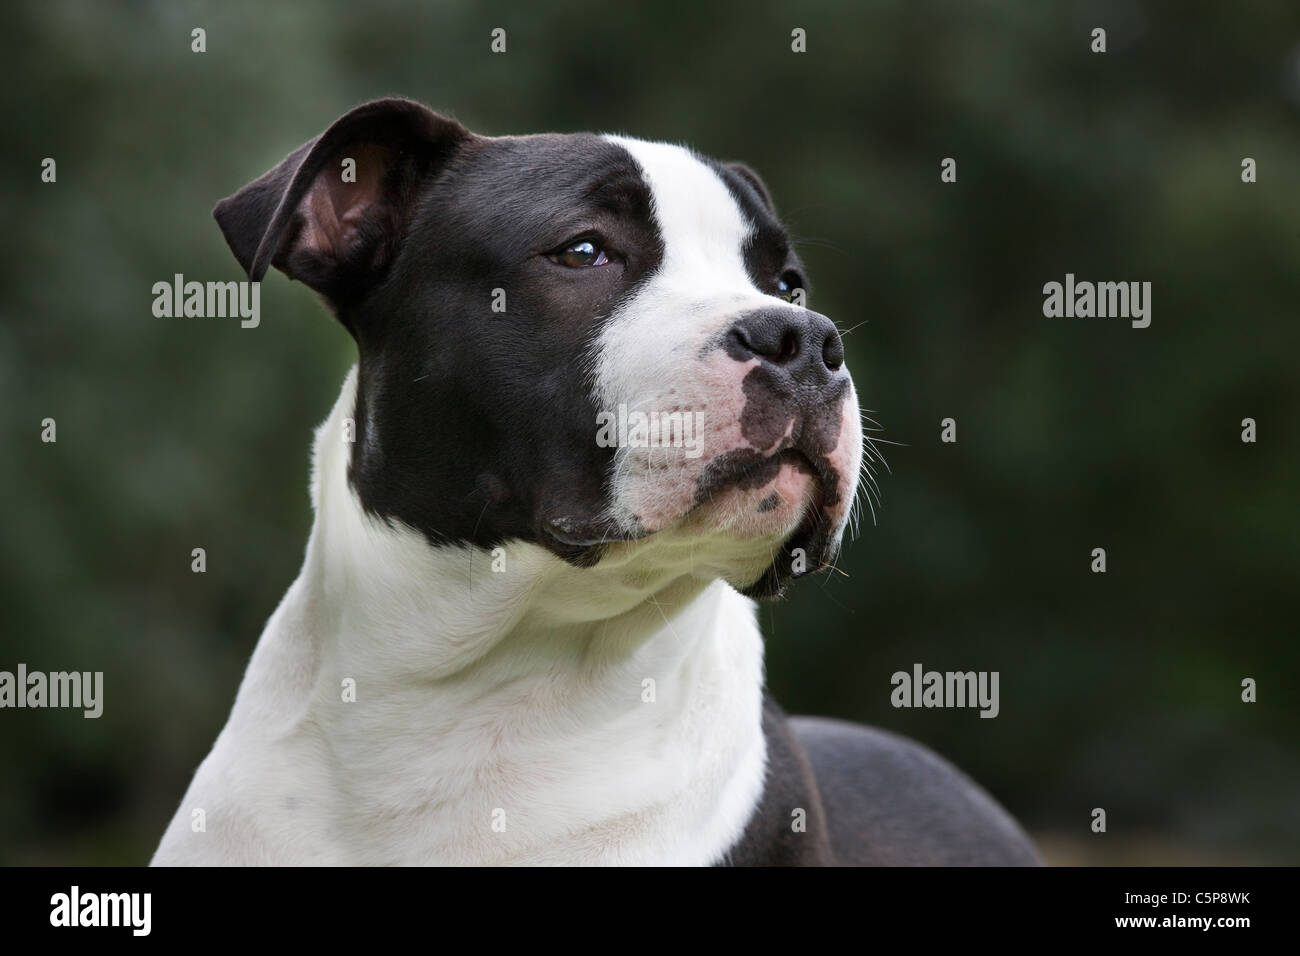 American Staffordshire terrier (Canis lupus familiaris) lying on lawn in garden - Stock Image